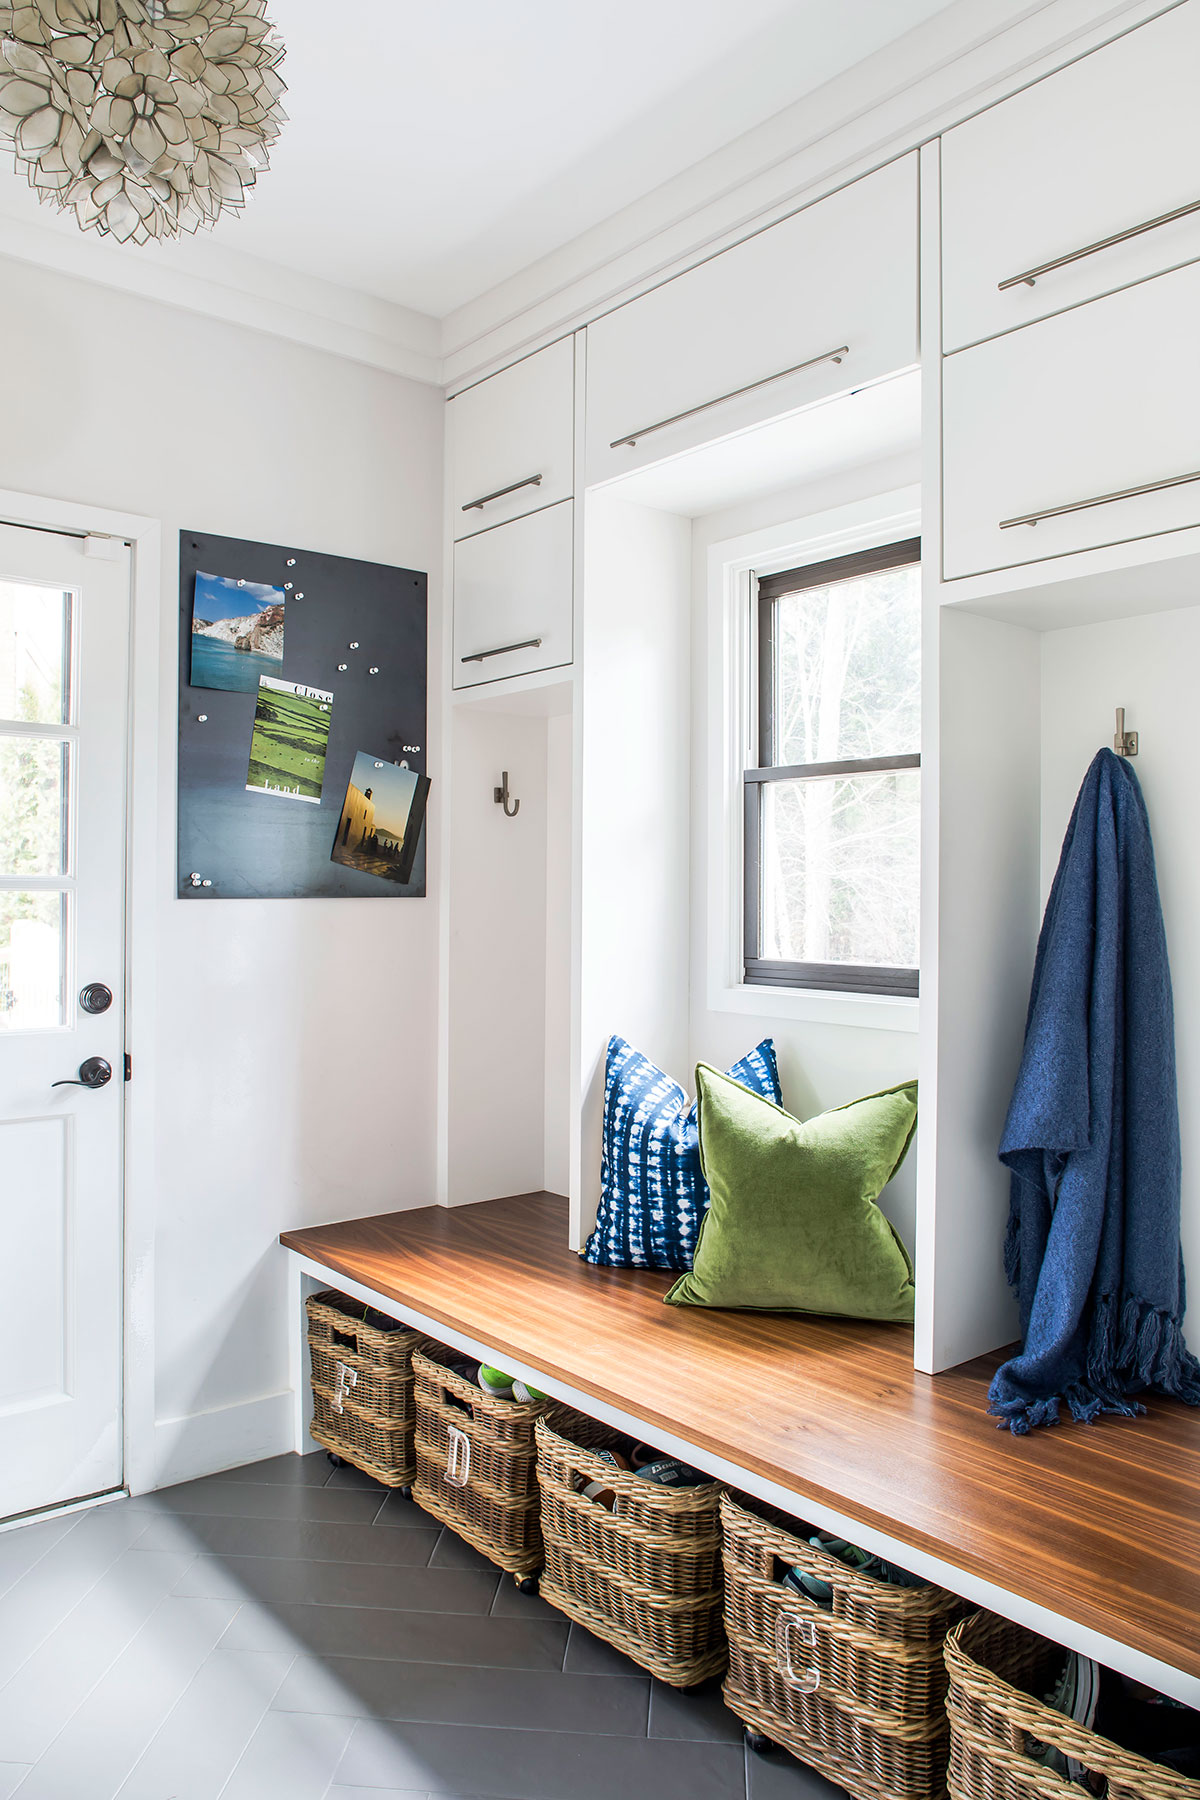 Contemporary mudroom with wood bench and under bench storage baskets